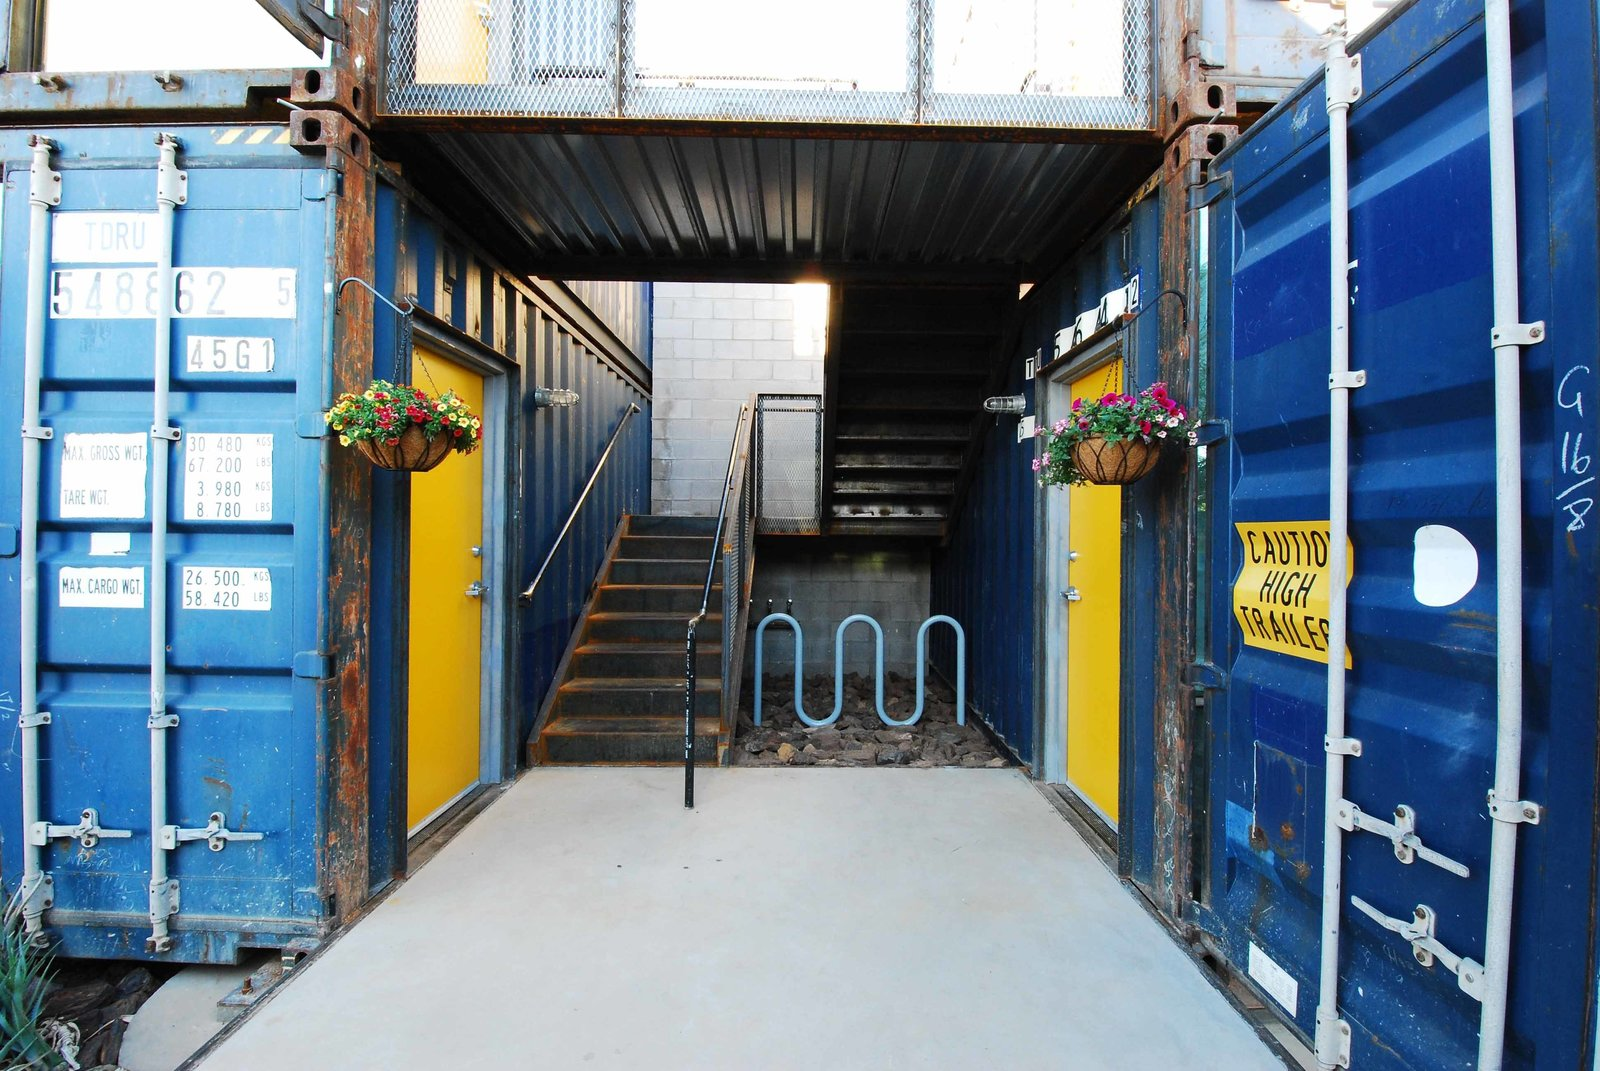 The containers are fused side-by-side, giving each apartment a 16-foot width. They are then stacked in four pairs with wrought, industrial-style exterior staircases in-between. To spare living space and installation headaches, a cinder block core houses utilities and a bathroom for each unit. Tagged: Exterior, Apartment, and Shipping Container Building Type.  Shipping Containers by Dwell from New Shipping Container Apartments Bring Market-Rate Rent to Downtown Phoenix